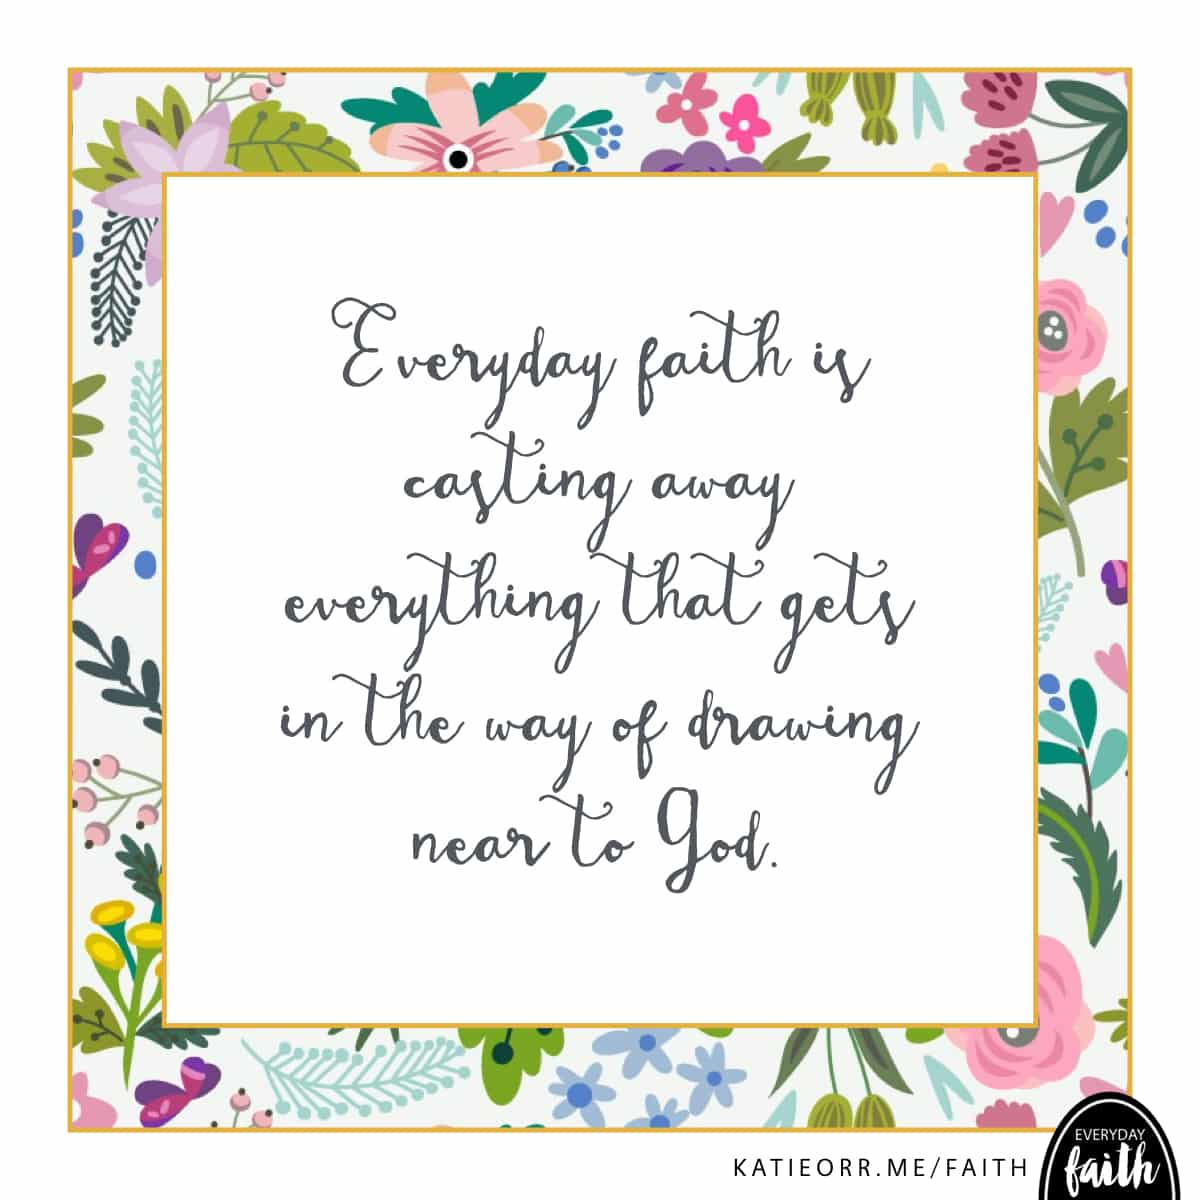 faith casts away anything that gets in the way of drawing near